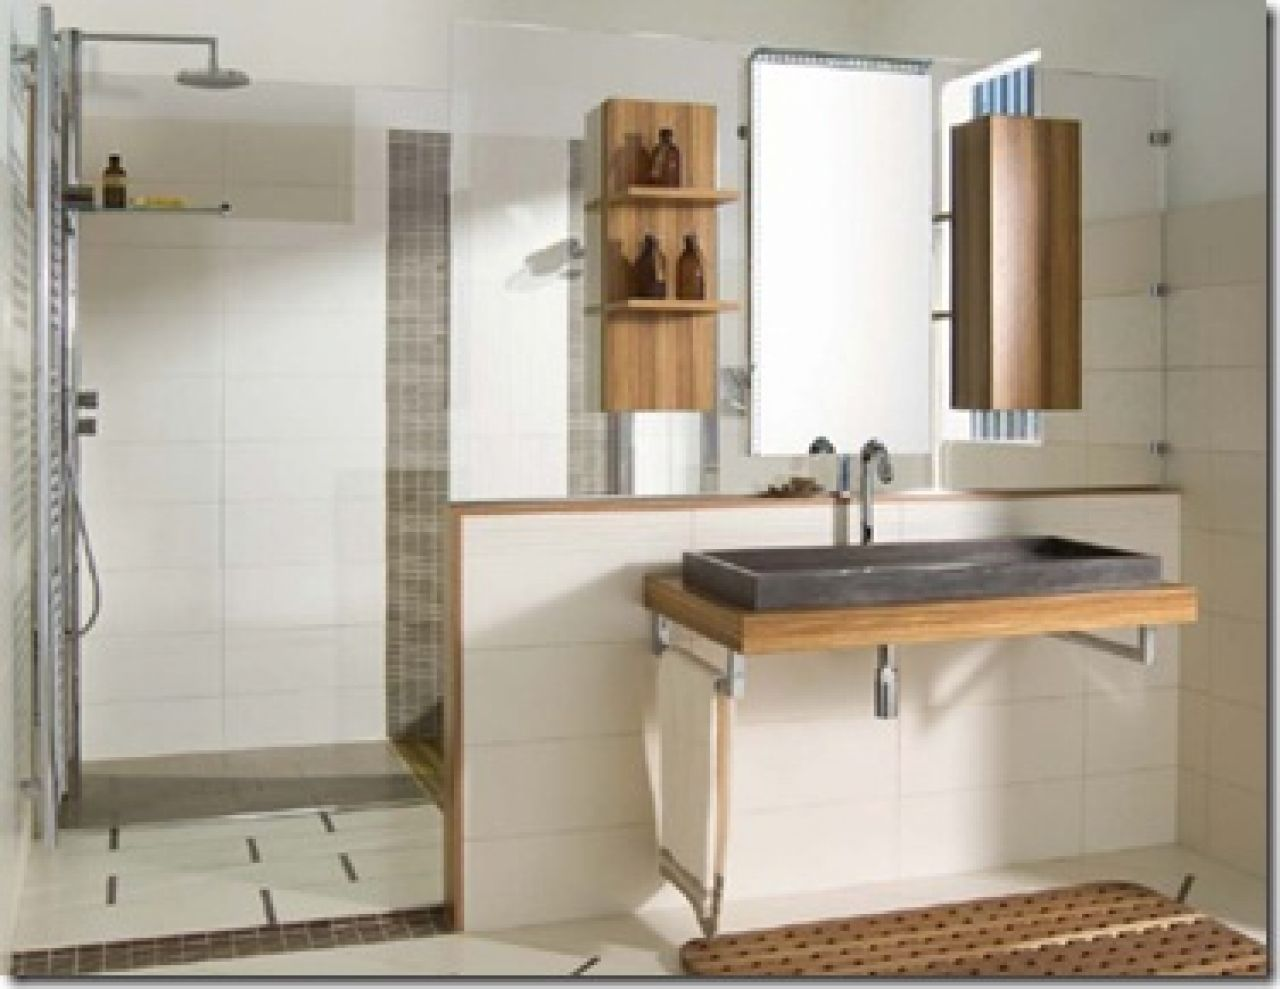 basic bathroom decorating ideas home design and improve your with simple - Basic Bathroom Ideas